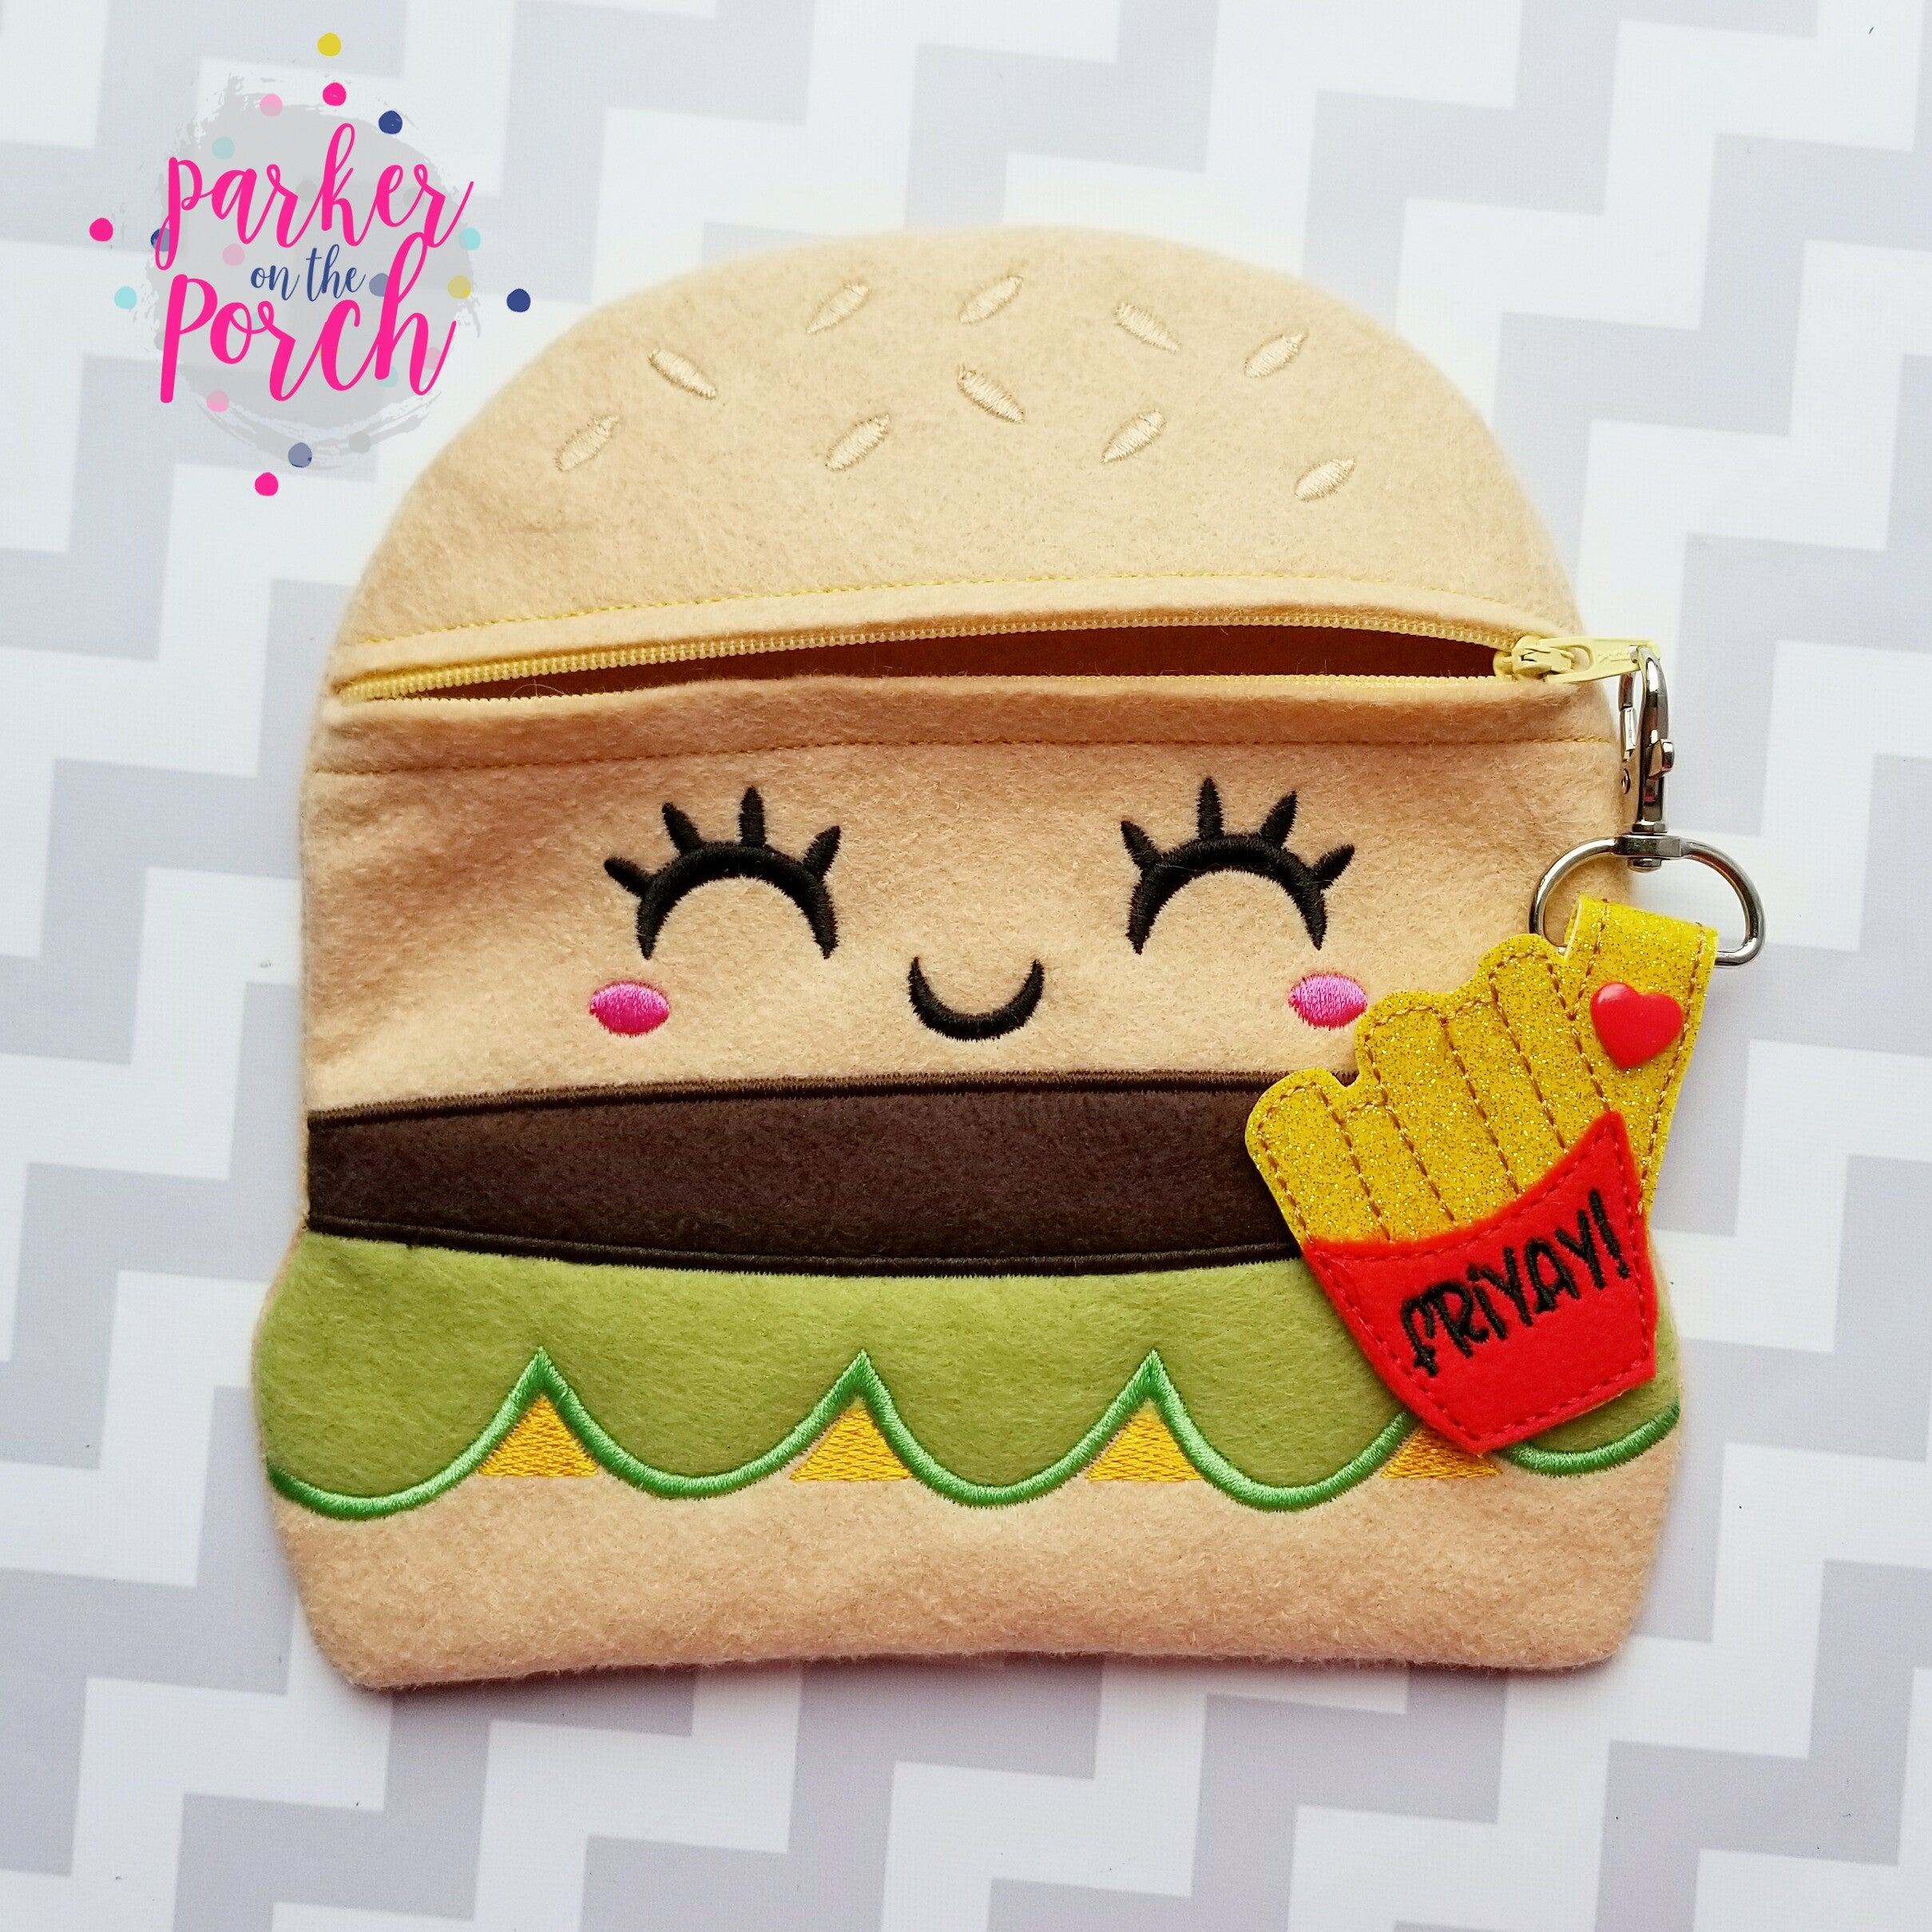 Digital Download - Cheeseburger Zipper Bag - in the hoop machine embroidery ITH pattern